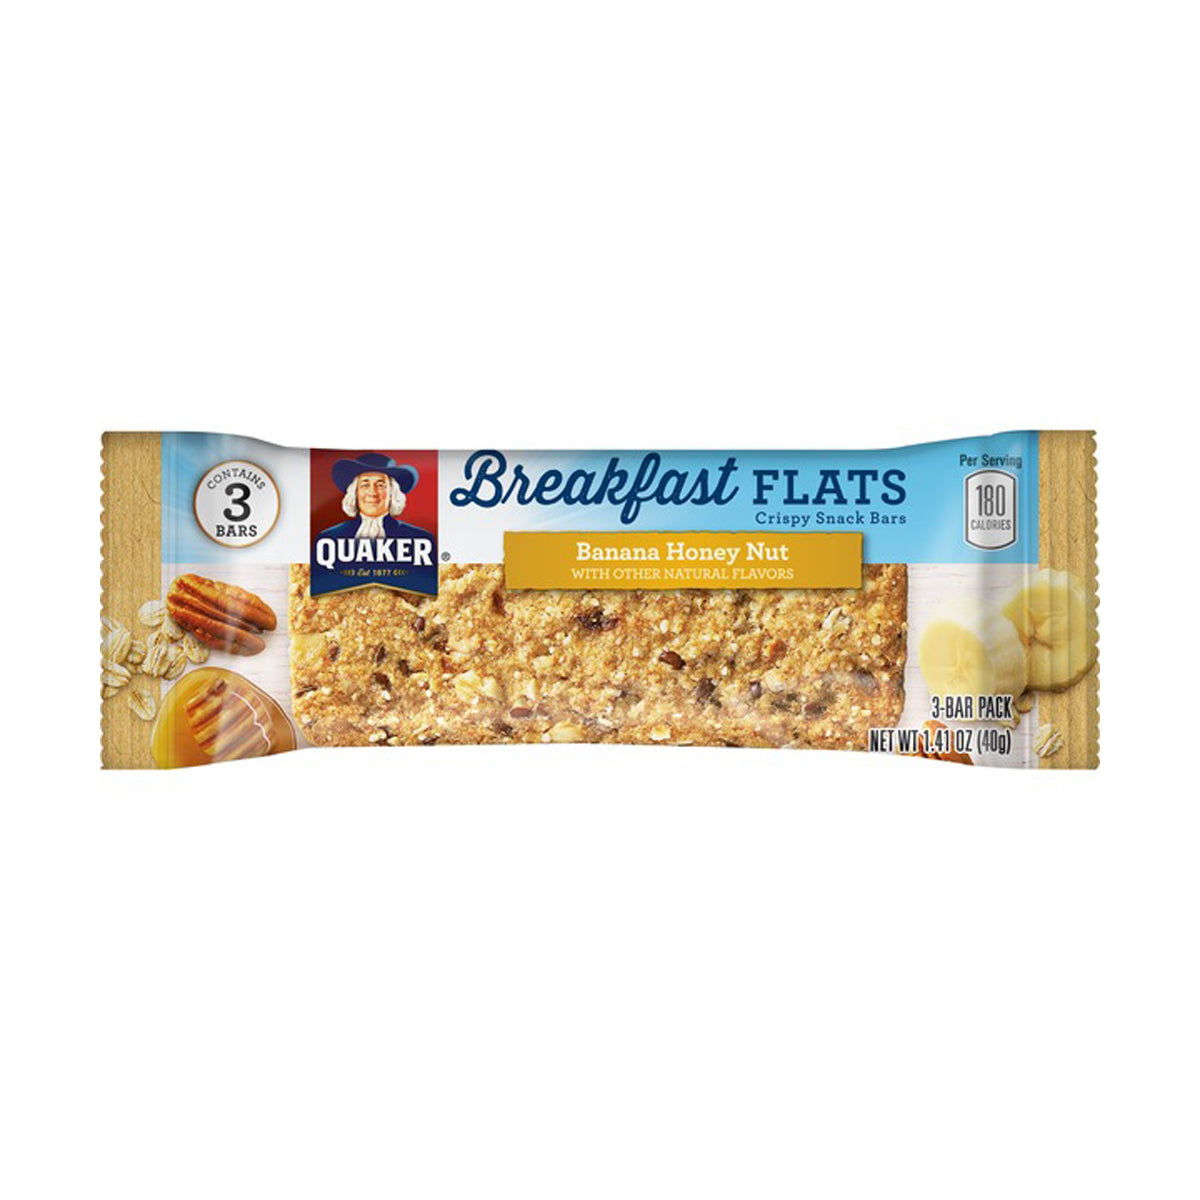 Quaker Breakfast Flats Banana Honey Nut - 1.41oz